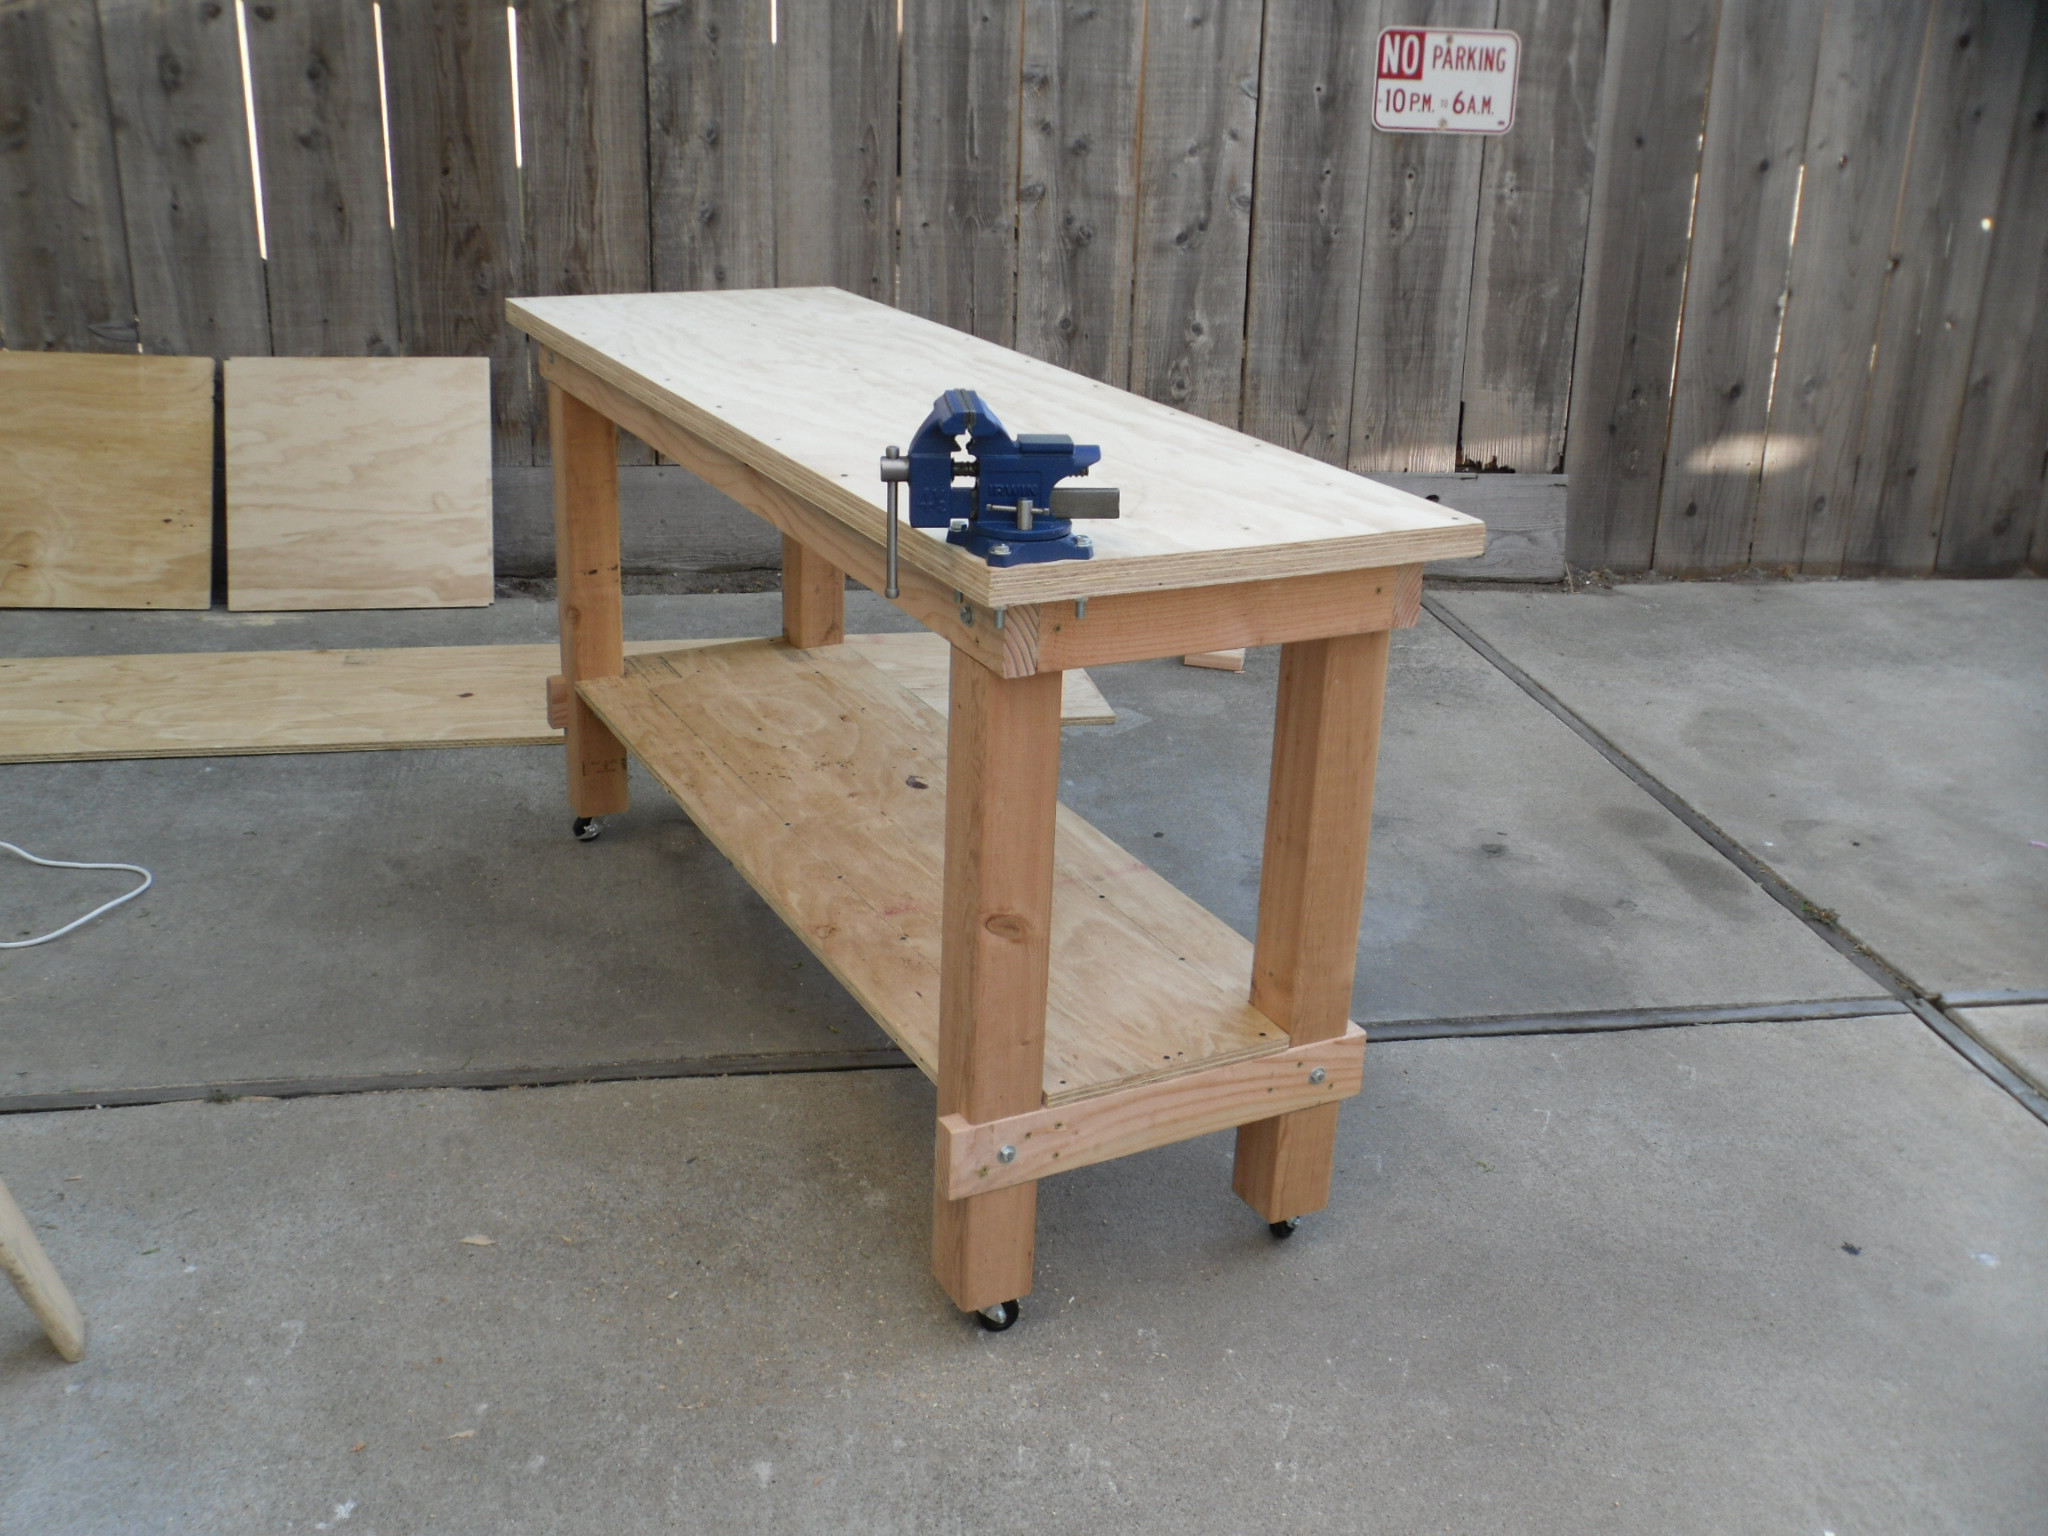 Best ideas about DIY Wood Work . Save or Pin bicycle repair workbench Now.